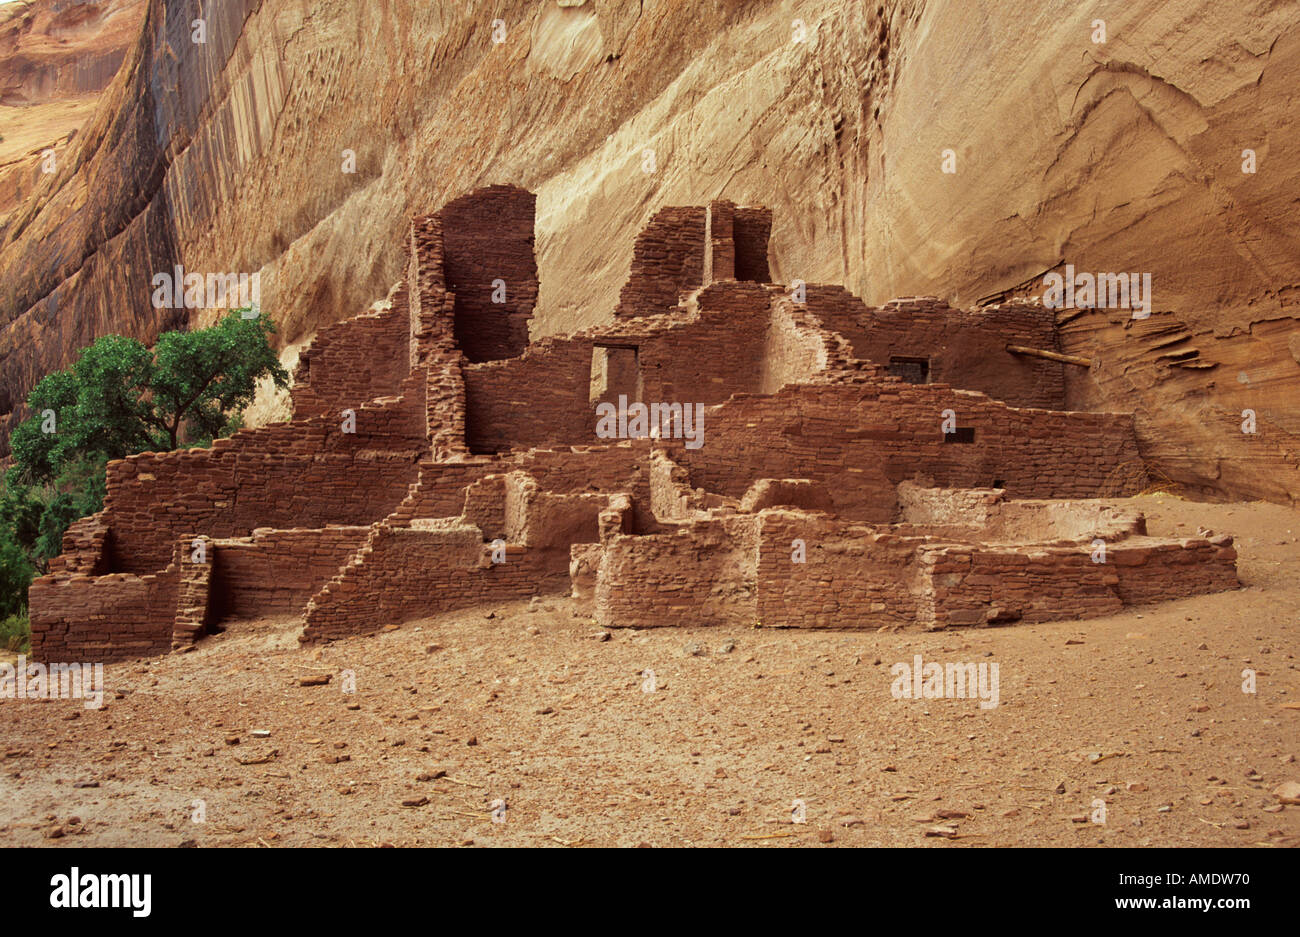 The White House Anasazi ruins Canyon de Chelly national park Arizona USA - Stock Image